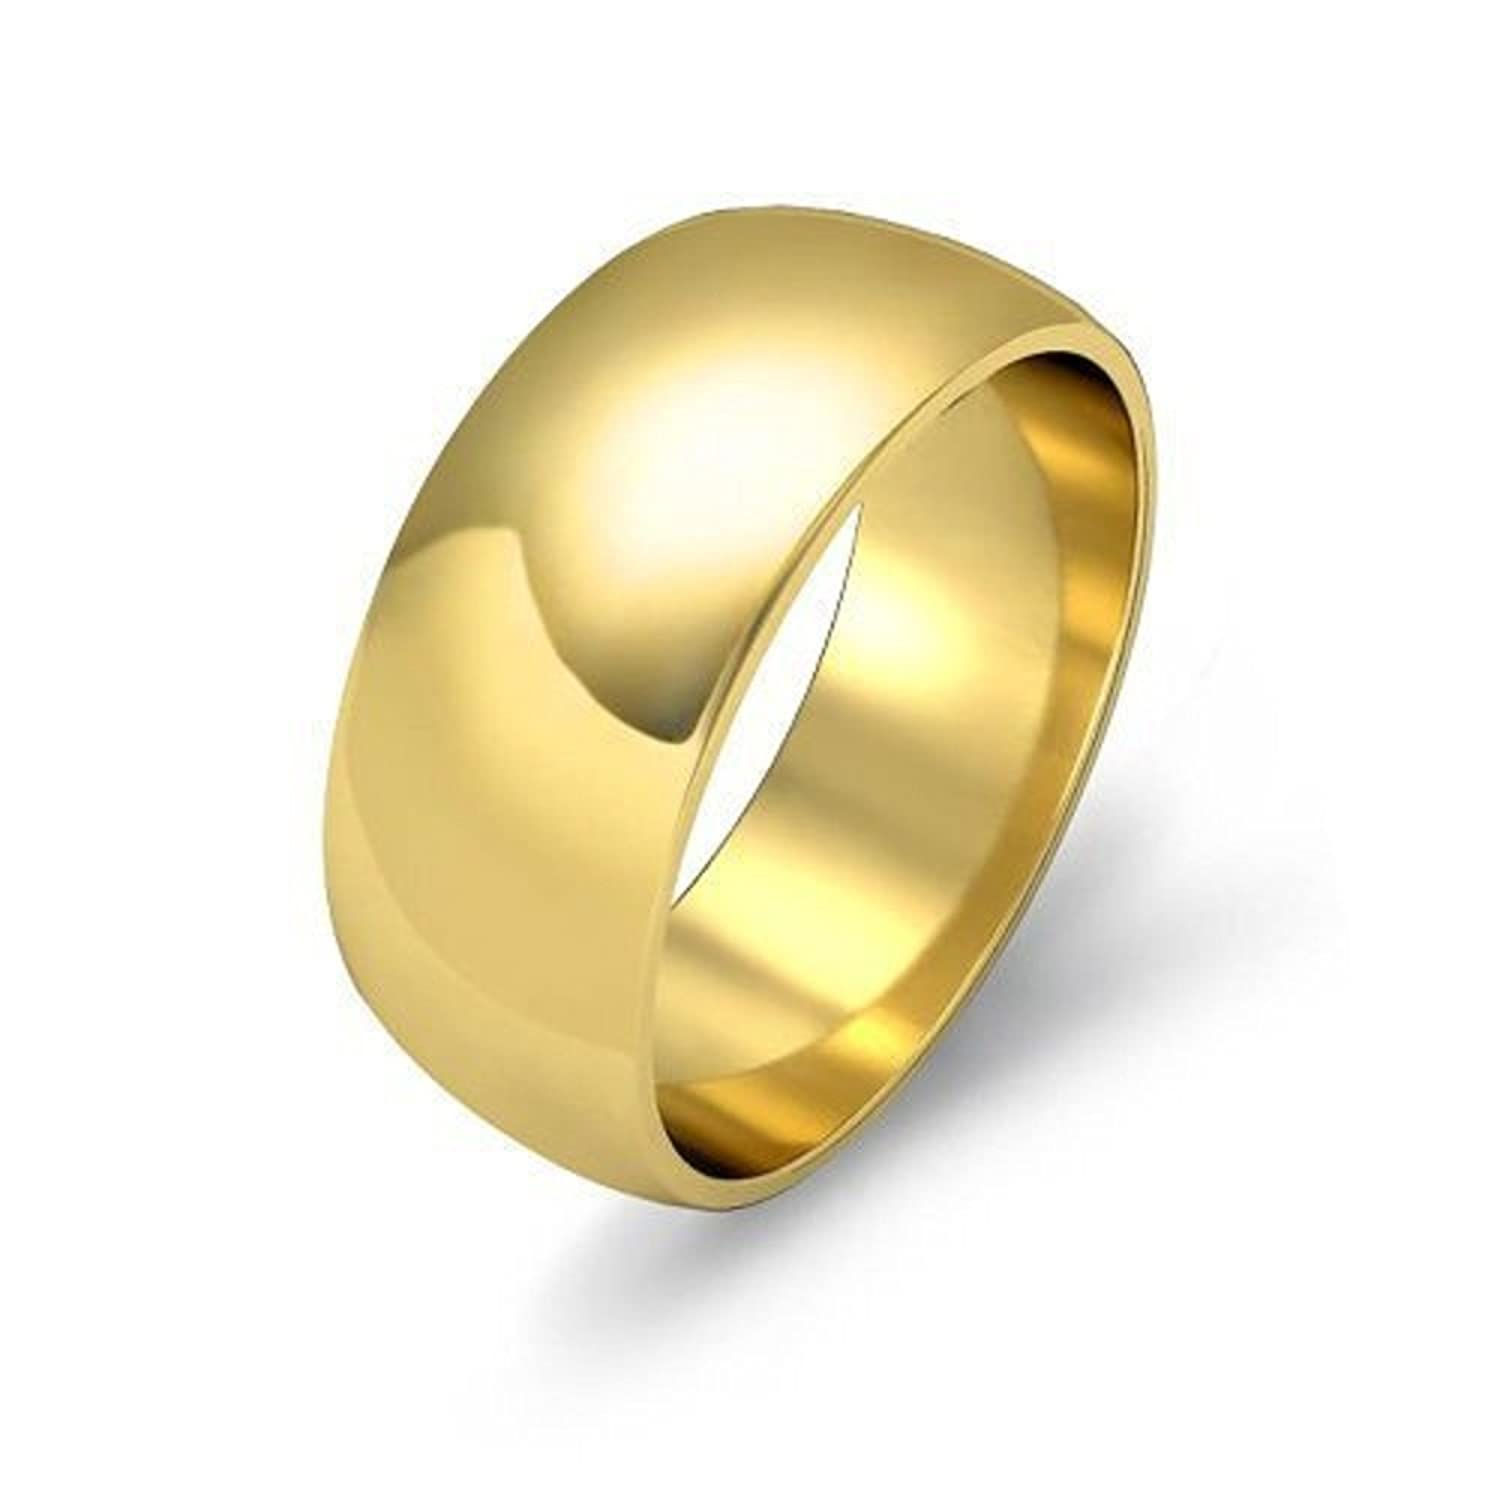 Men/'s Gold Finish Ring Polished Stainless Steel Band New 7mm Sizes 4-13